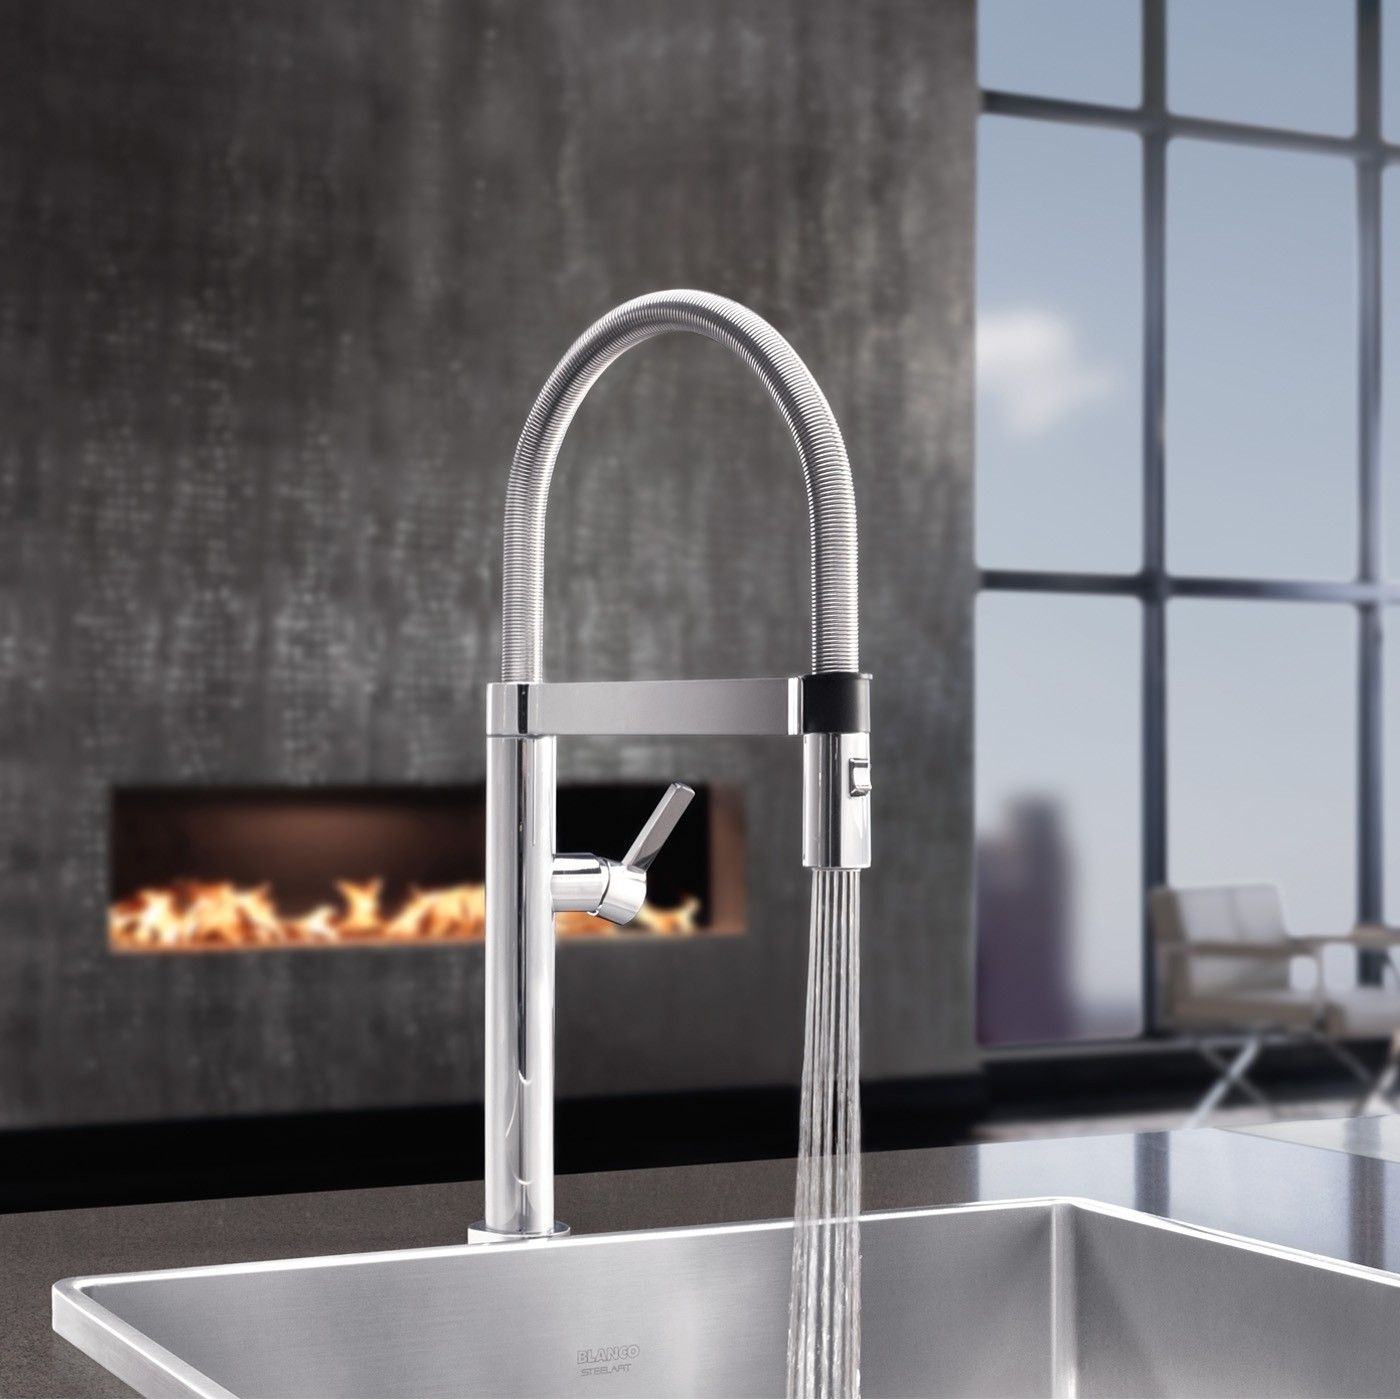 Genial The Culina Mini Pull Down Kitchen Faucet Offers Refined Utility For Modern  Kitchens. Http://www.ybath.com/blanco Culina Mini Pull Down Kitchen Faucet .html